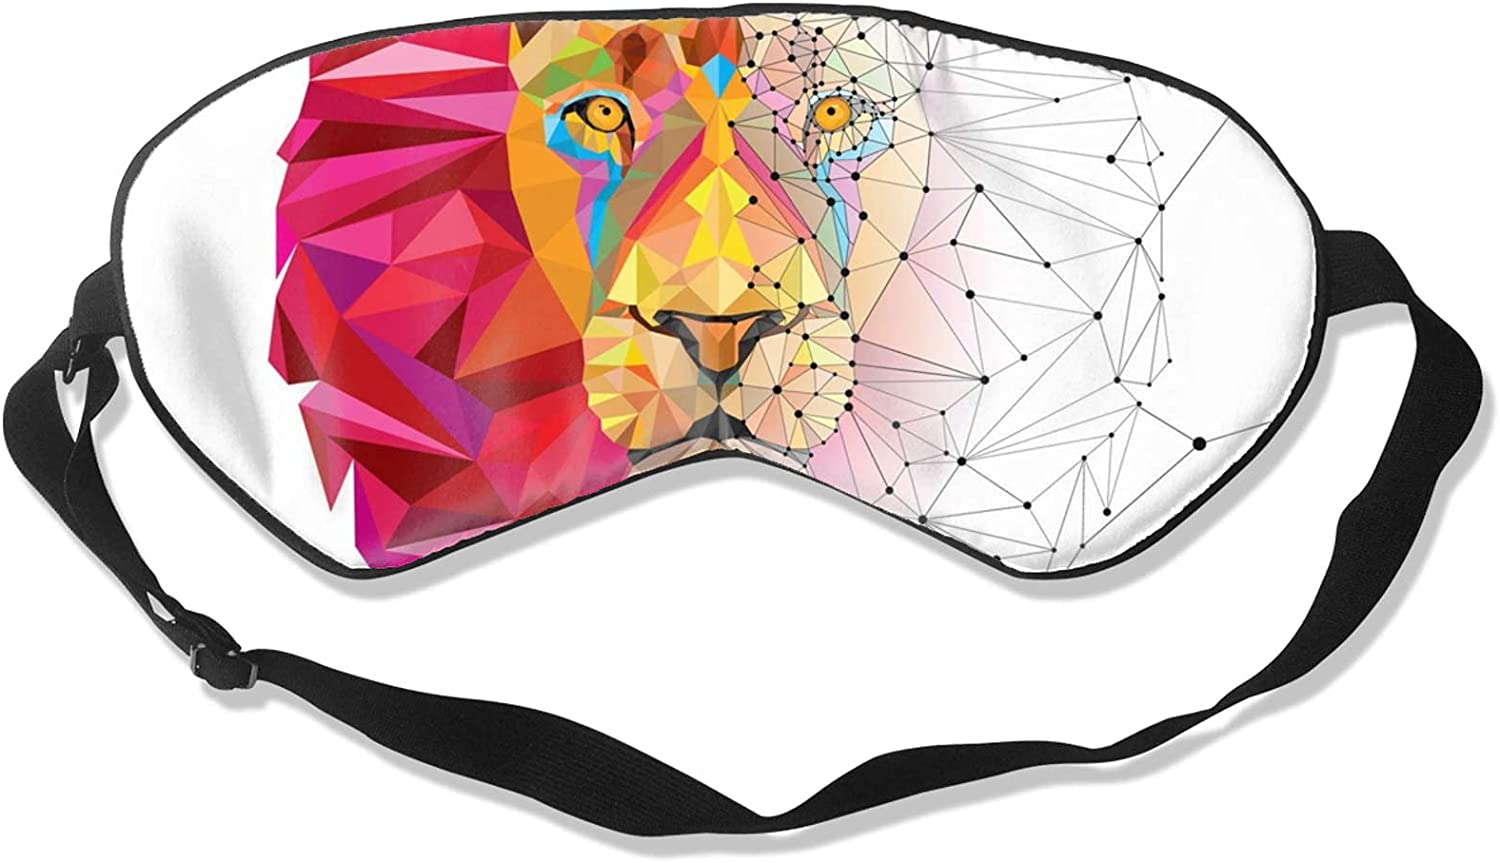 Colorful 35% OFF Lion Soft Sleeping Eye Sleep Animer and price revision Cover Mask Block-Light